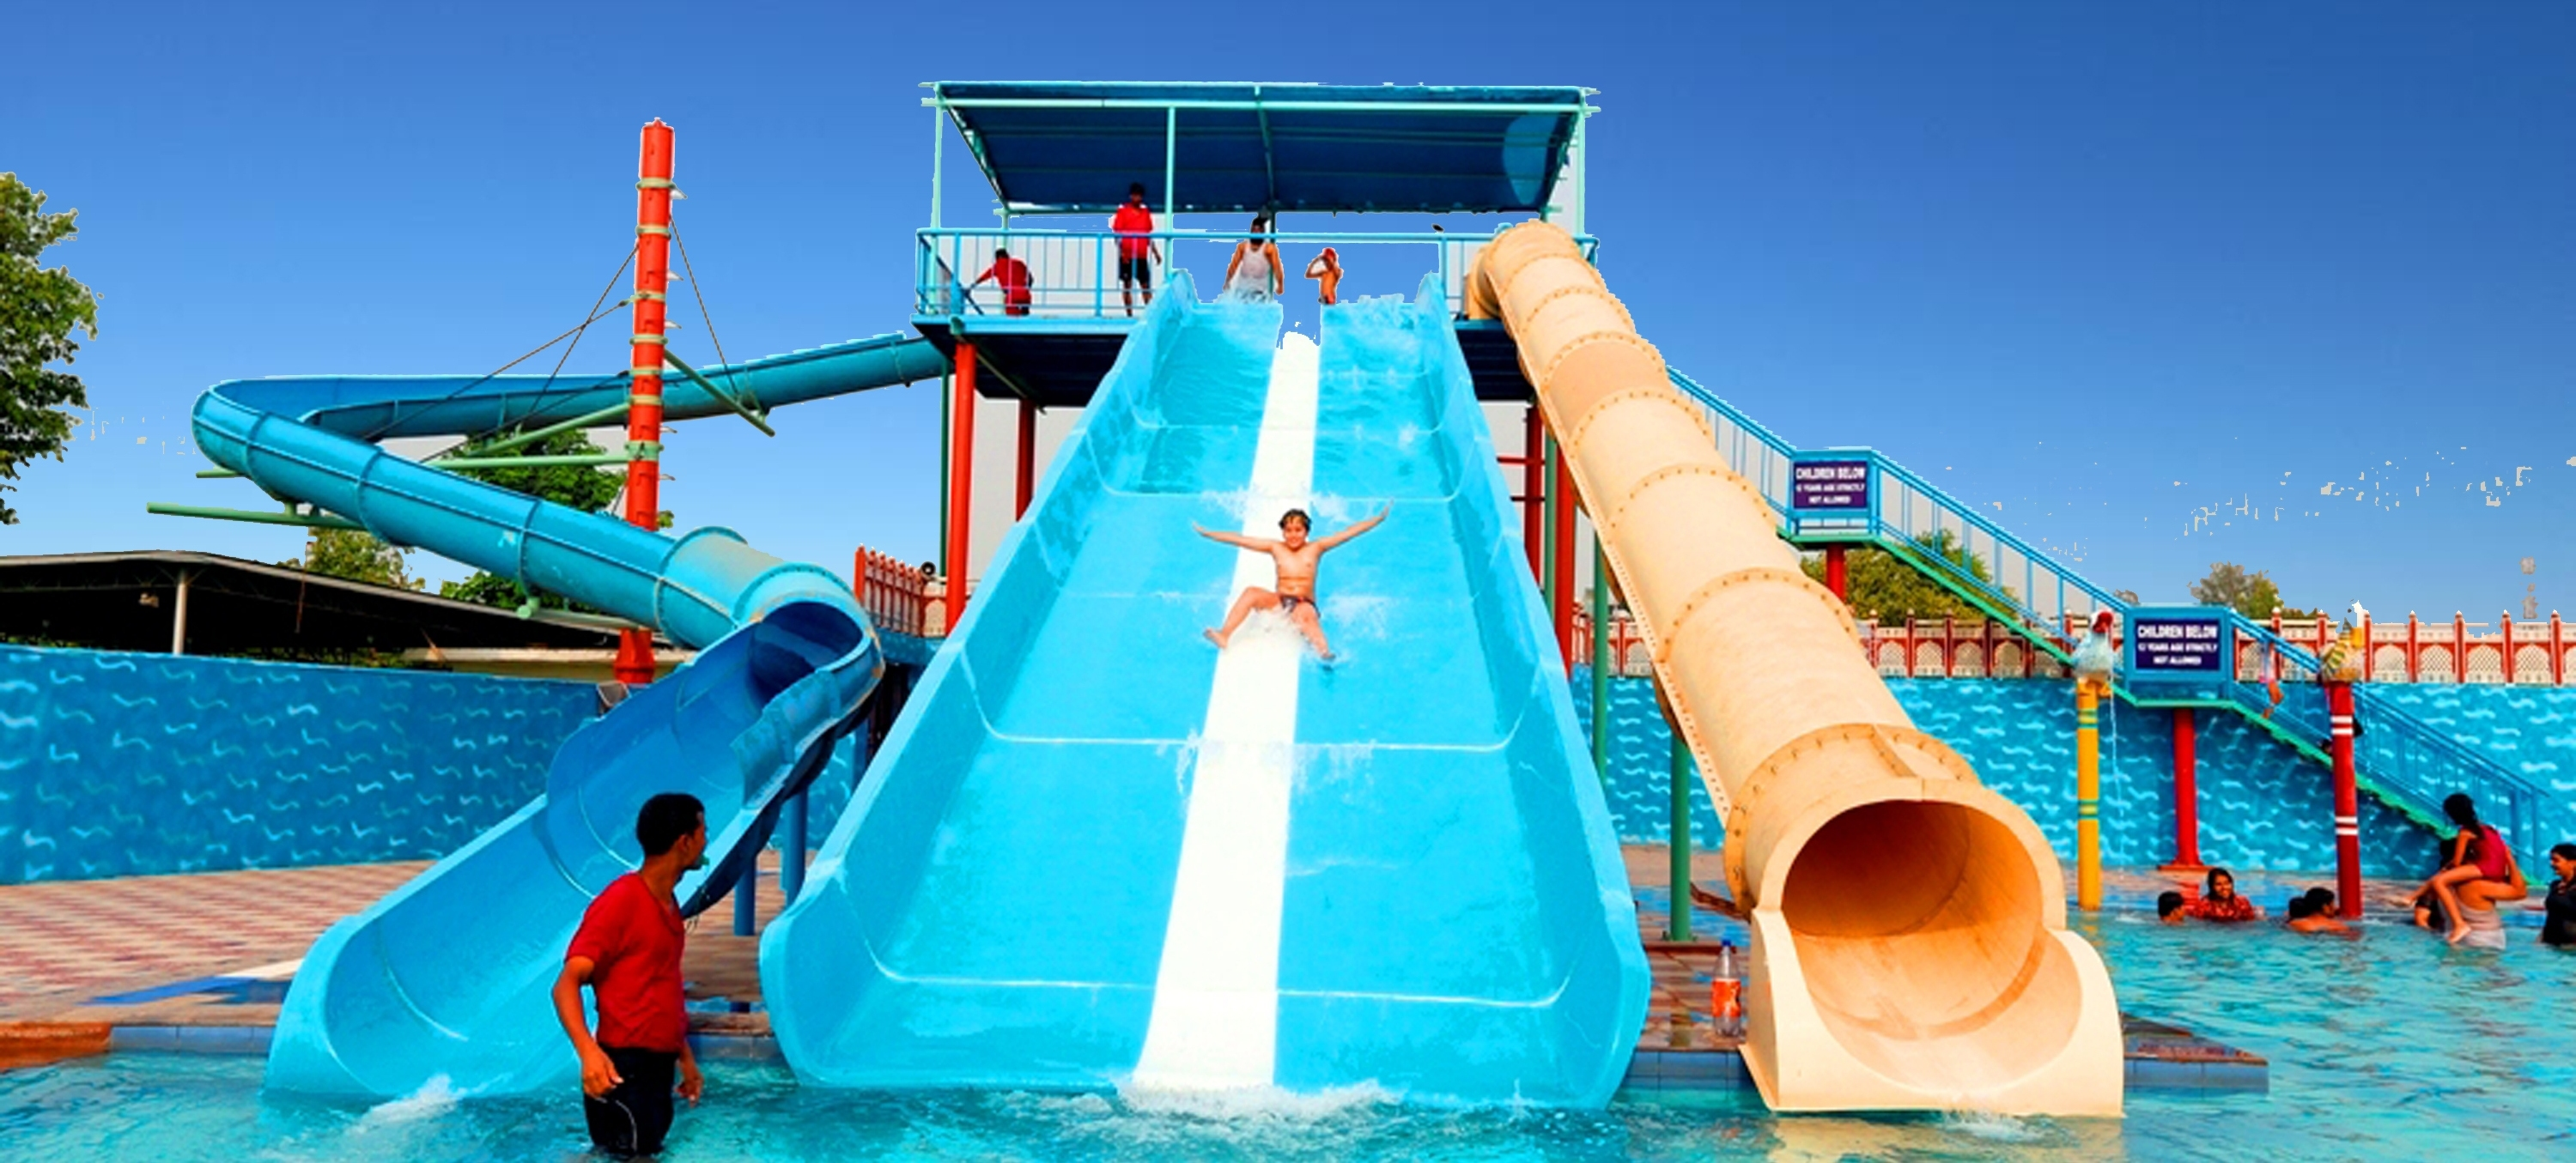 Water Park, Amusement Park, Fun Park, Theam Park